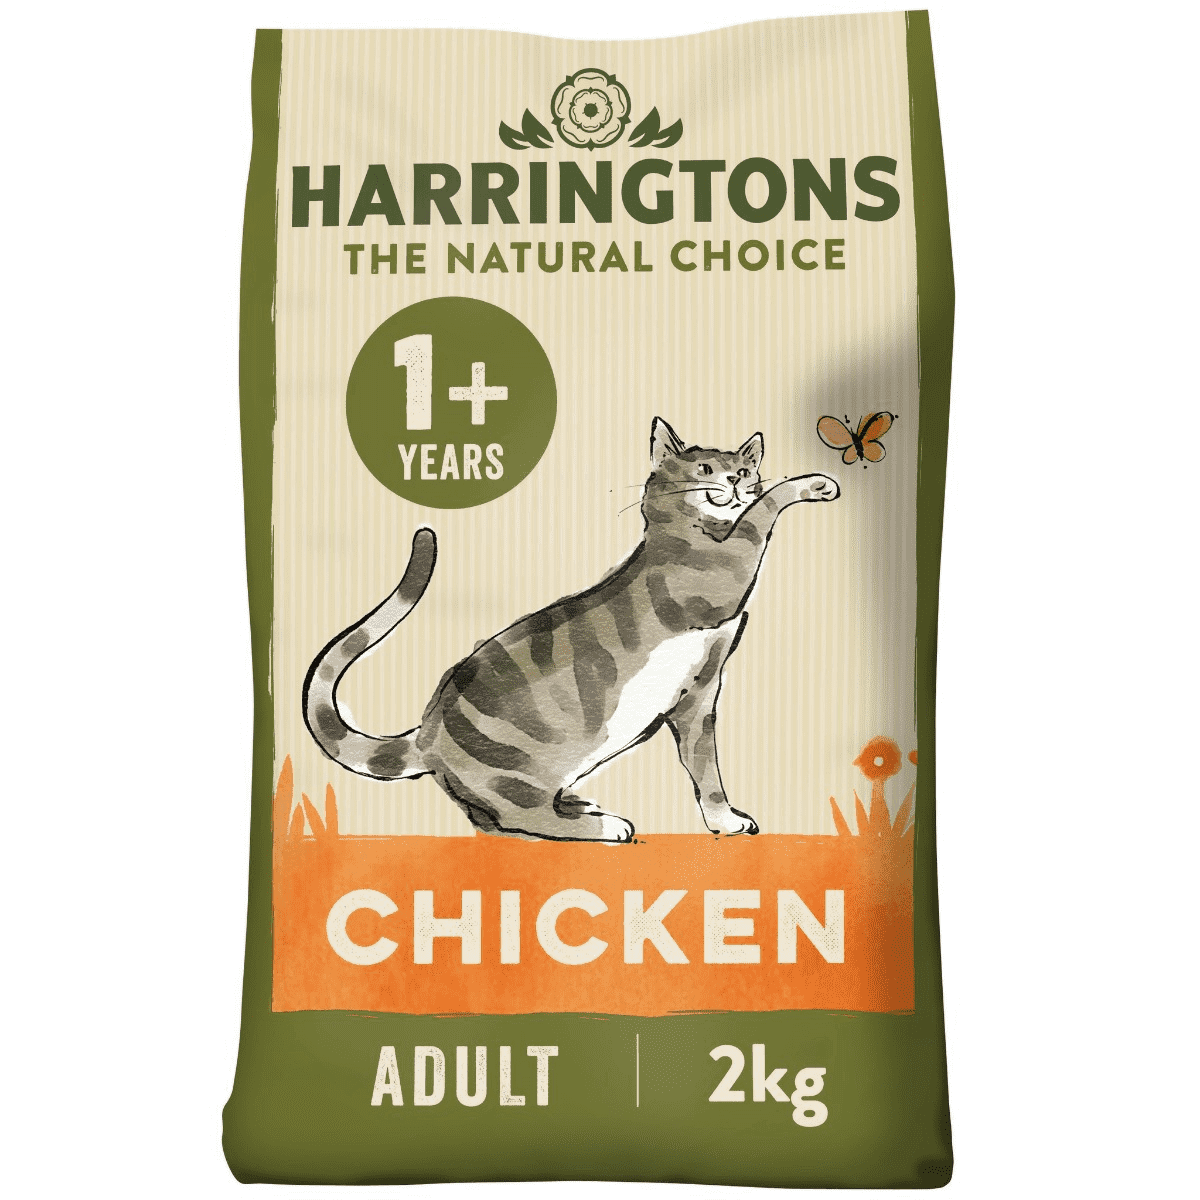 Harringtons Complete Adult Chicken Dry Cat food 2kg, Cat Food by Dog In A Box